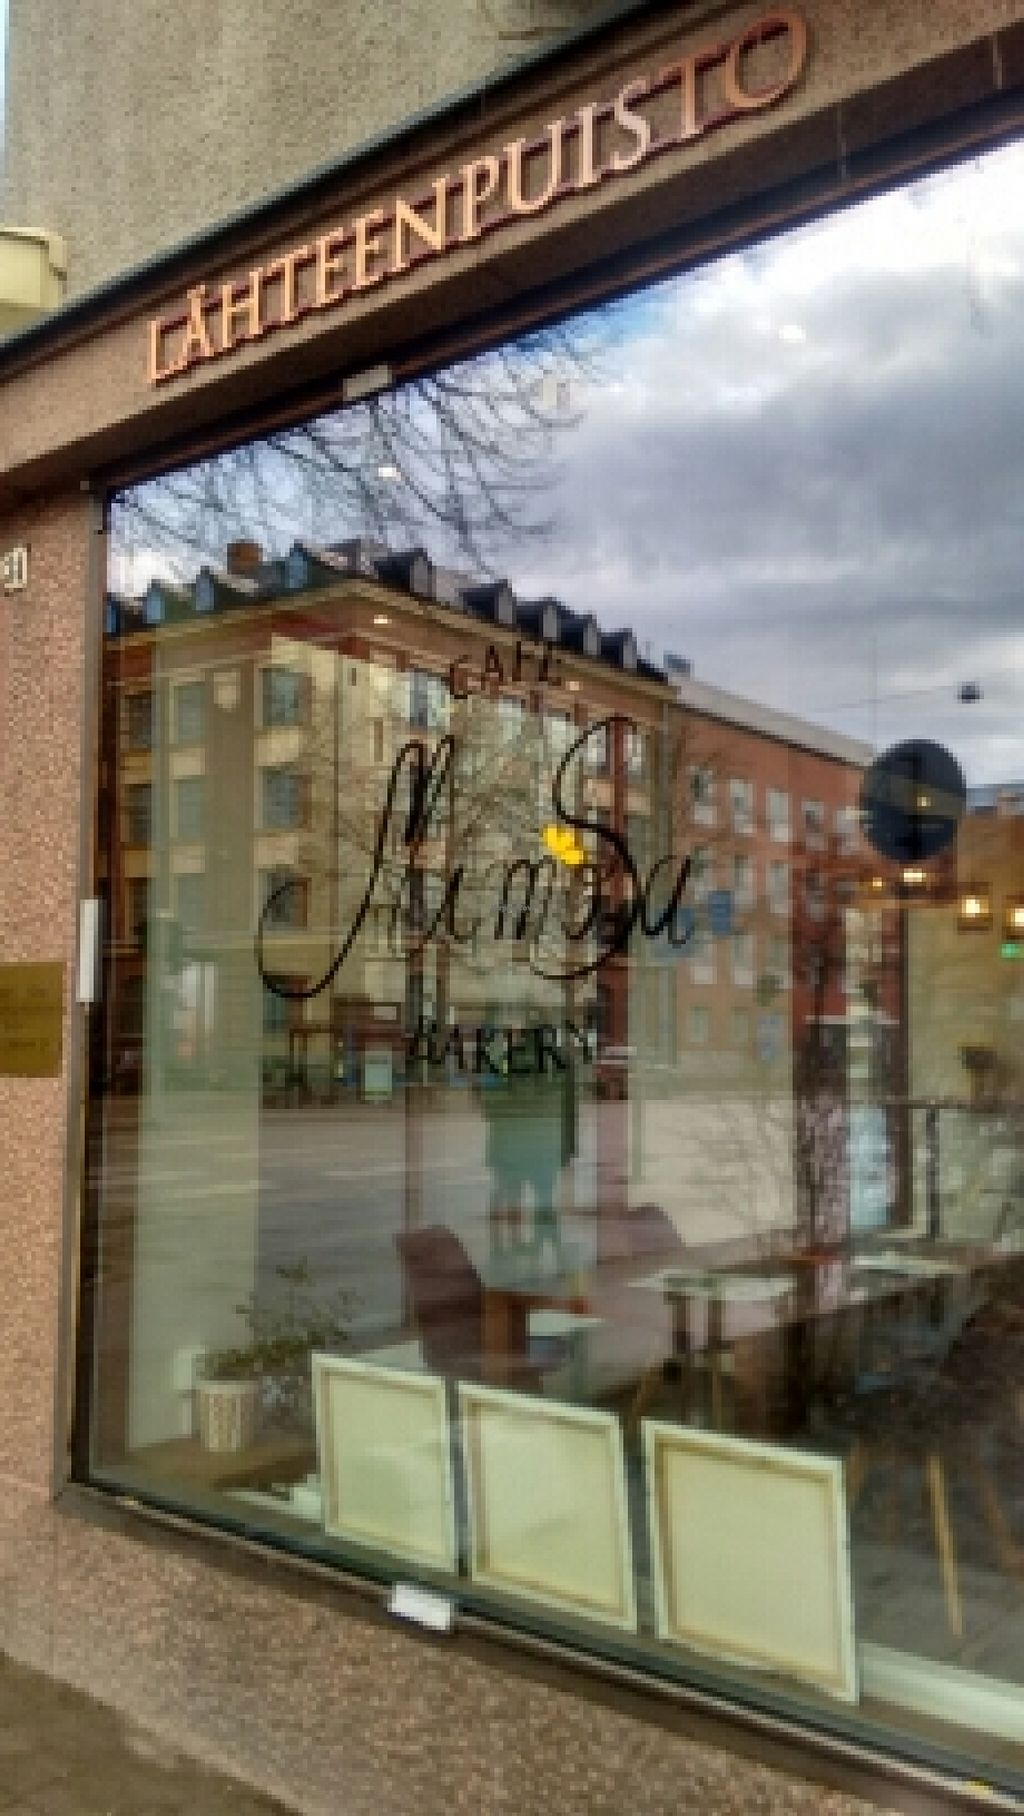 "Photo of Cafe & Bakery Mimosa  by <a href=""/members/profile/Miio%20Seppaenen"">Miio Seppaenen</a> <br/>mimosa cafe & bakery <br/> April 10, 2016  - <a href='/contact/abuse/image/71779/143757'>Report</a>"